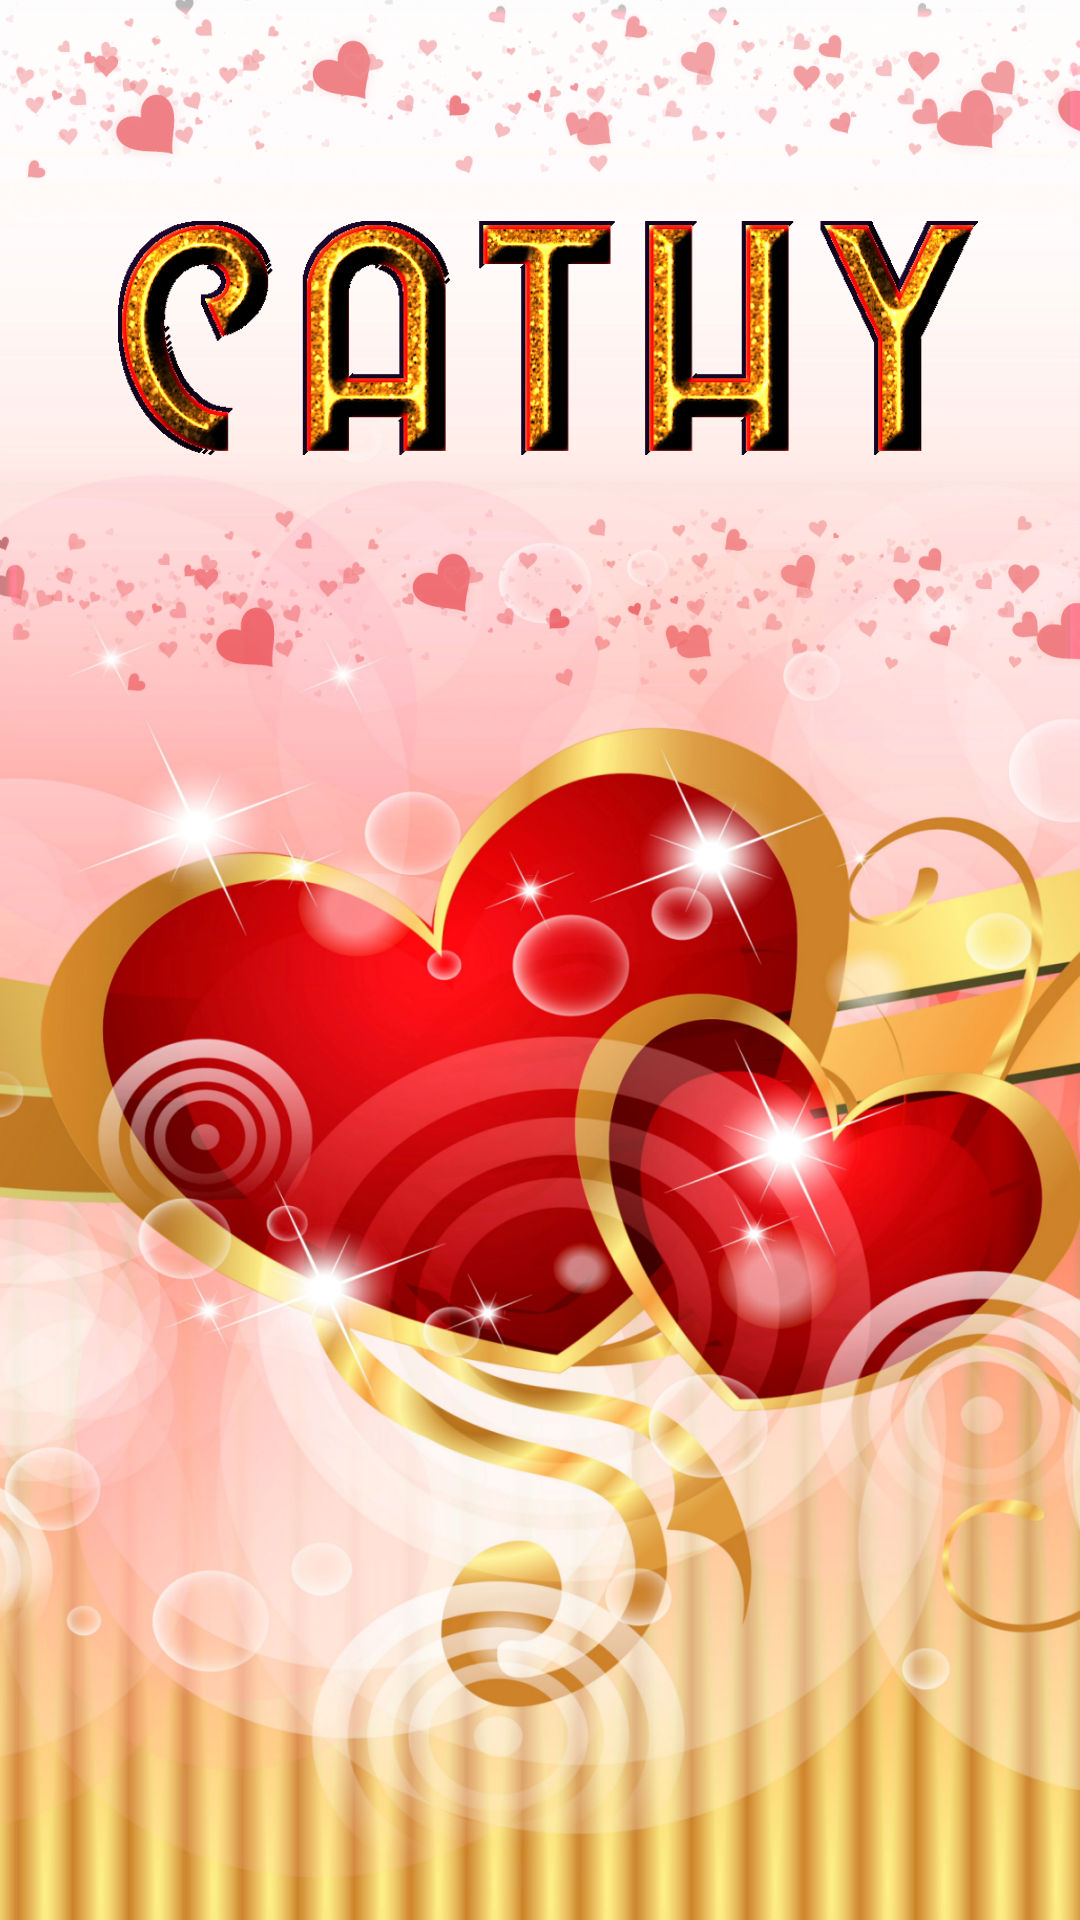 Download SM3RC Copyright(c) CATHY NAME NAMES HEART ...